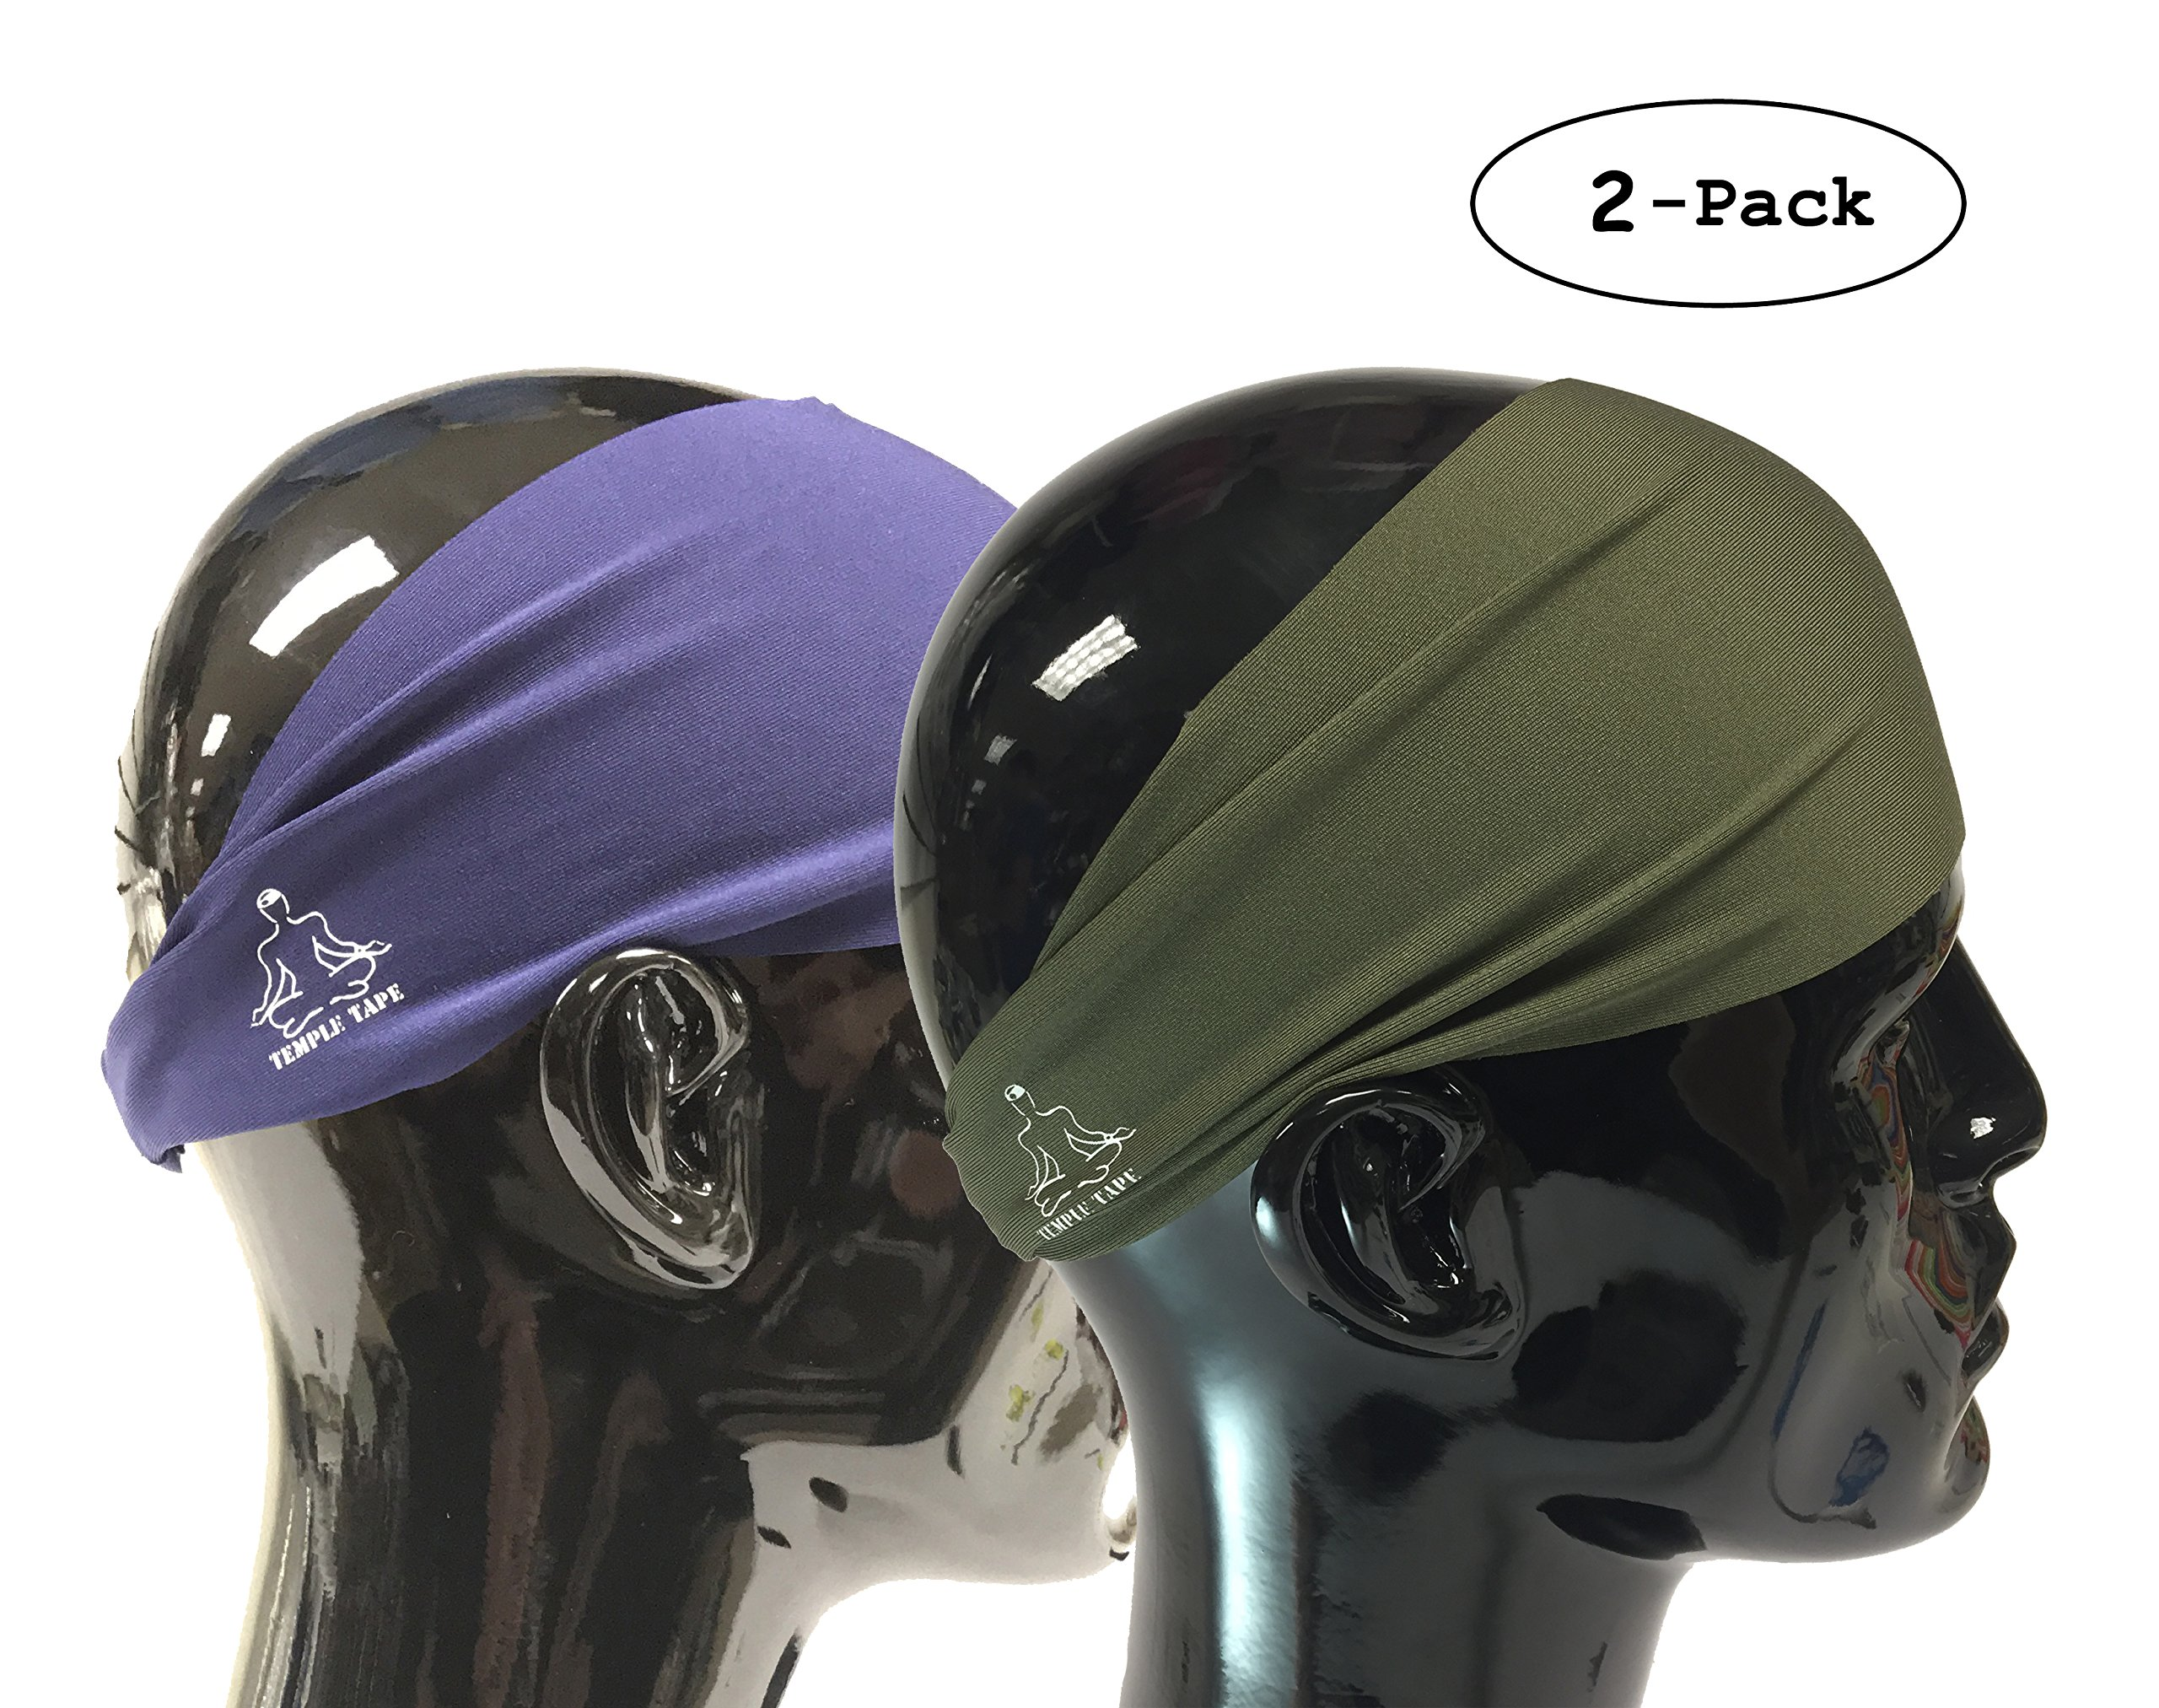 Value 2-Pack, Mens Headband - Guys Sweatband & Sports Headbands Moisture Wicking Workout Sweatbands for Running, Cross-Train, Skiing and bike helmet friendly - Value Pack 1-OD Green & 1-Navy Sweatband